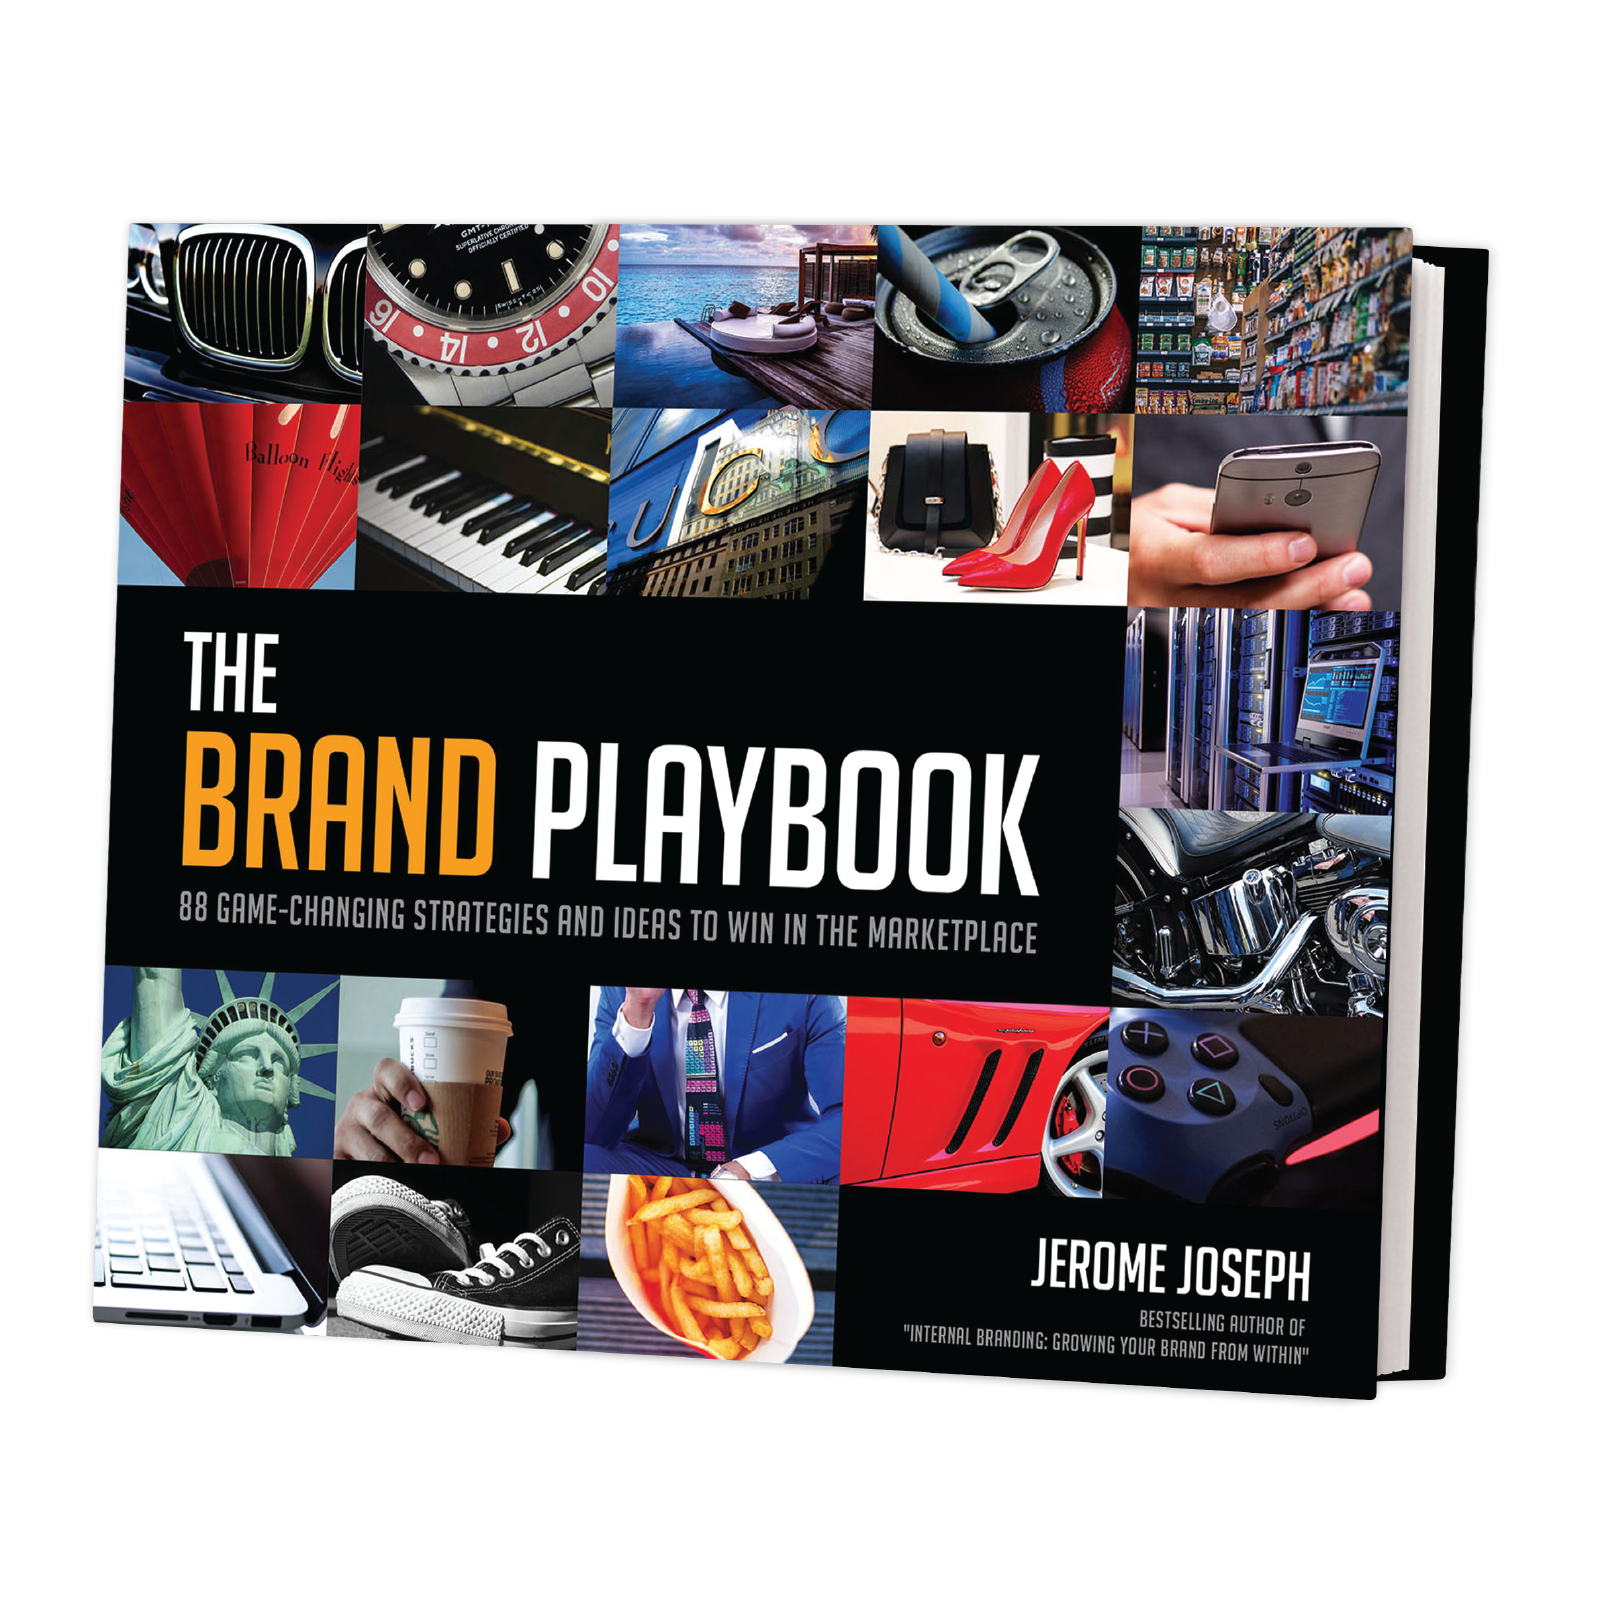 The Brand Playbook: 88 Game-Changing Strategies and Ideas To Win in the Marketplace (E-book)